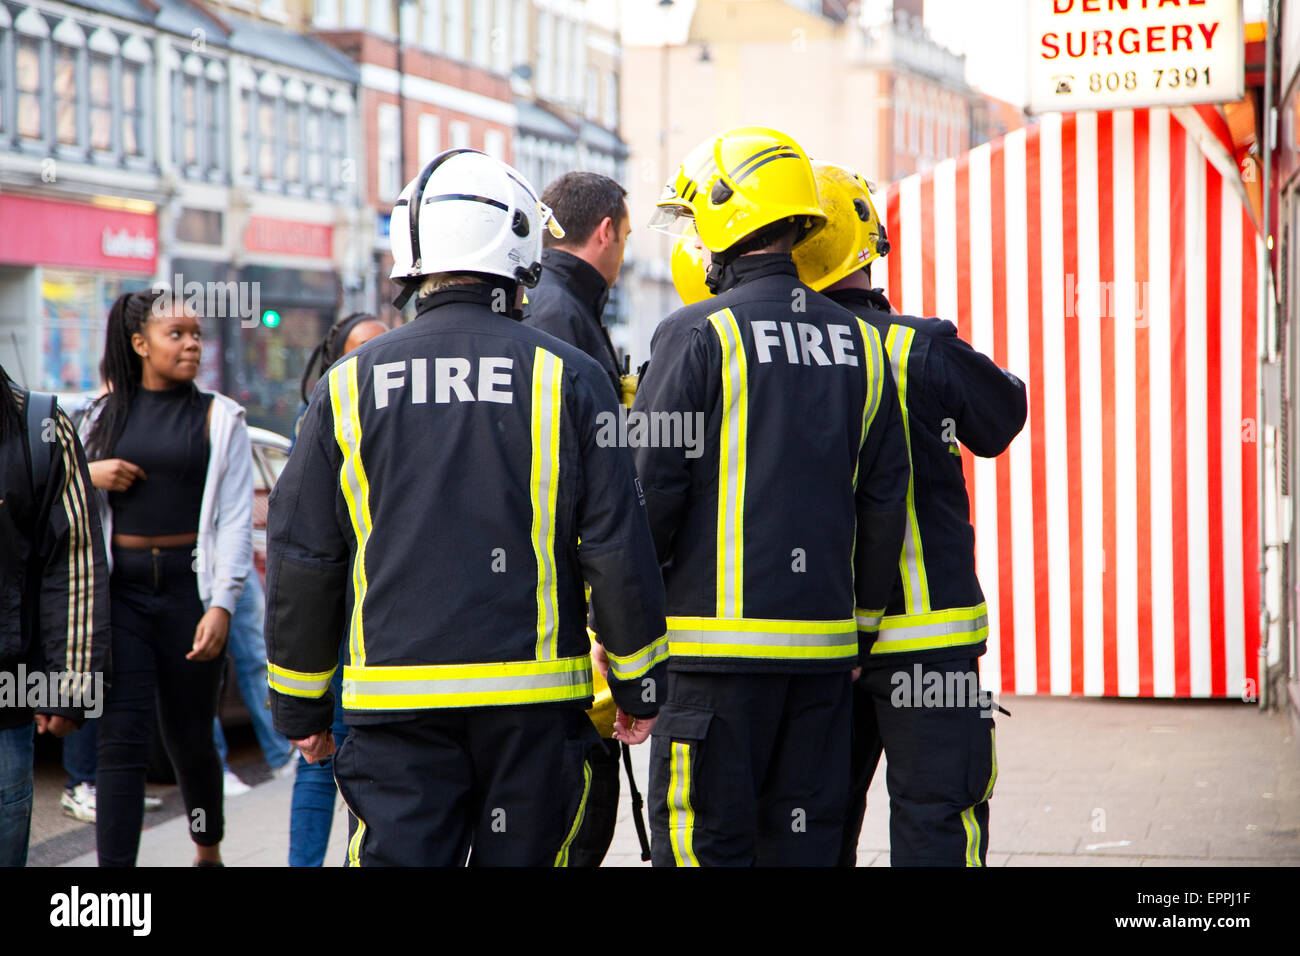 LONDON - APRIL 9TH: The fire brigade attend an emergency in Tottenham on April 9th, 2015 in London, England, UK. - Stock Image